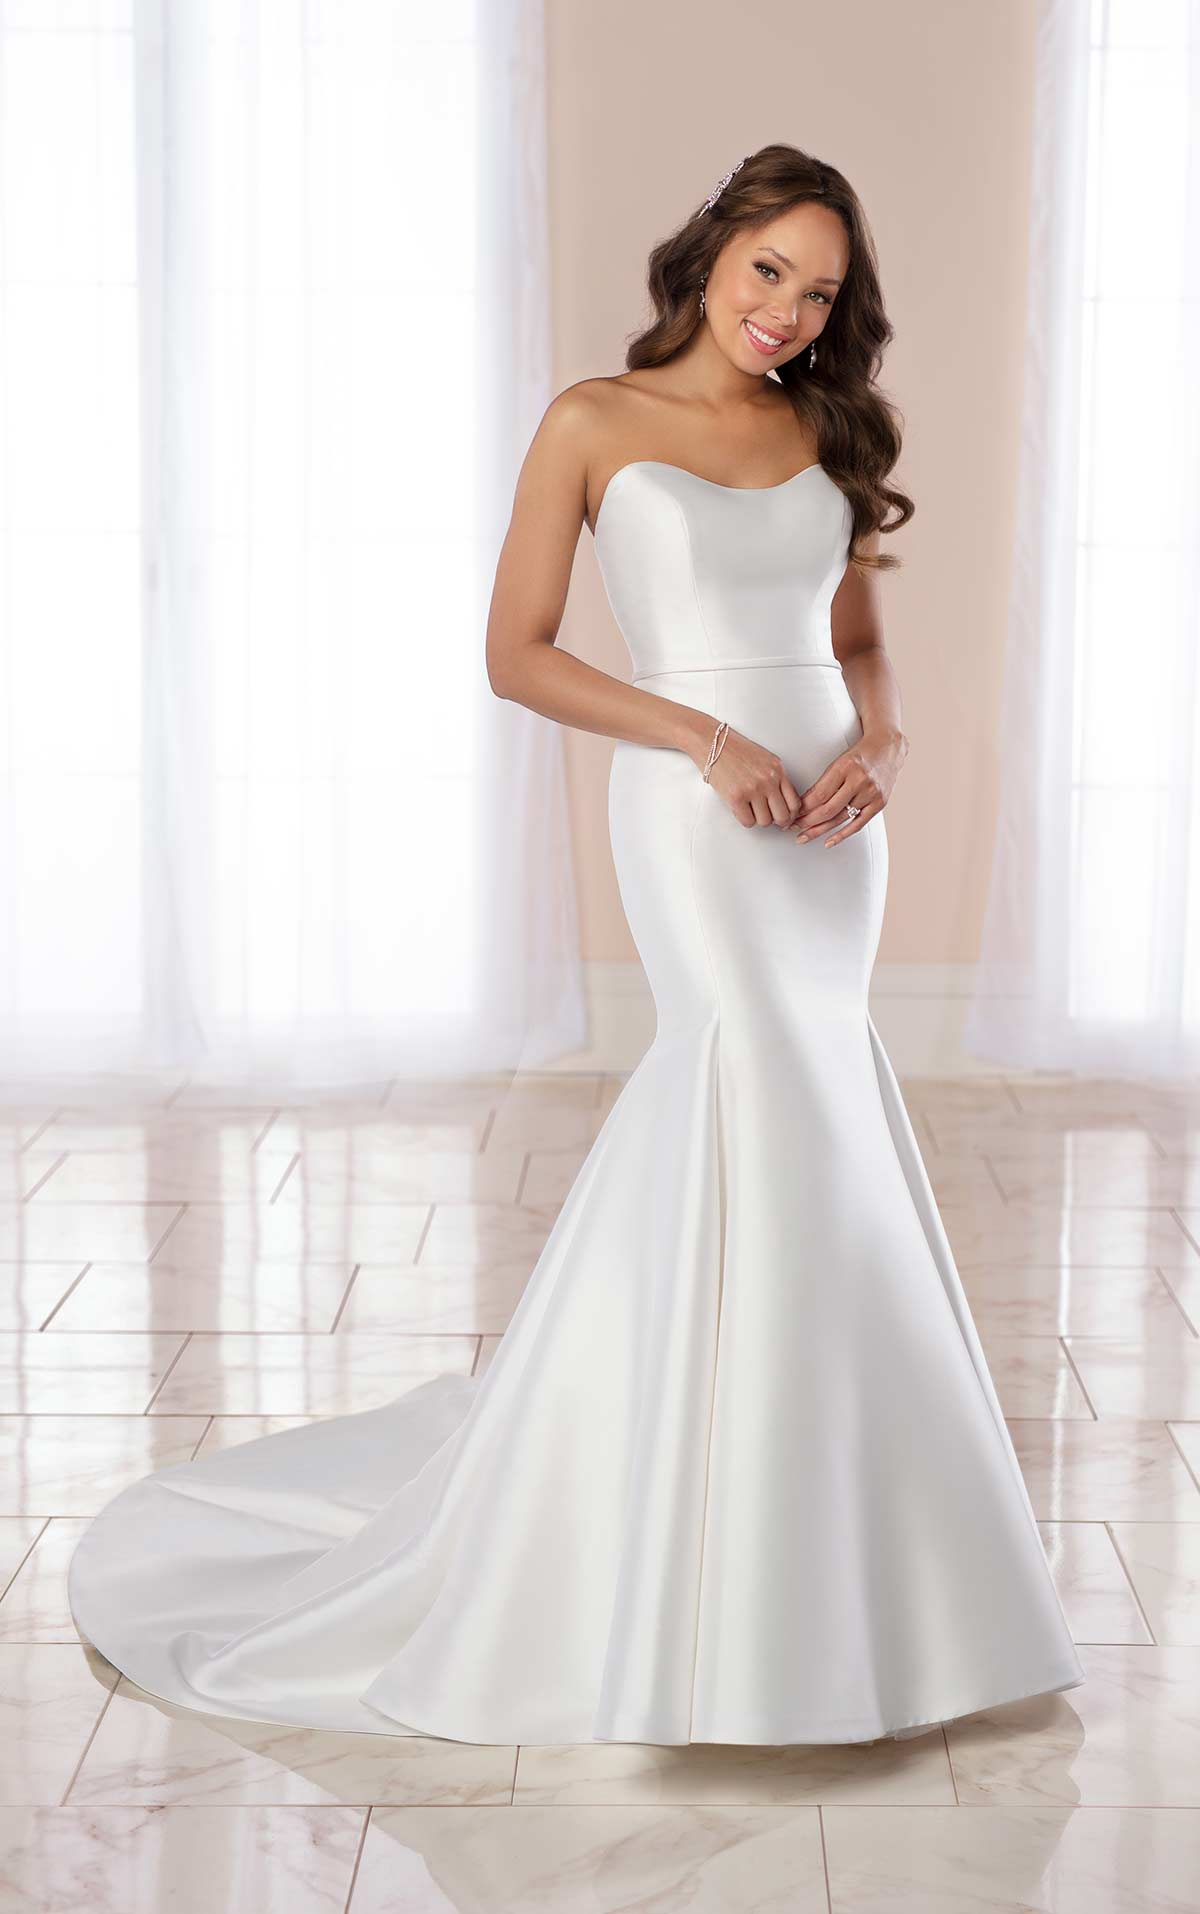 Sleek and Strapless Fit & Flare by Stella York